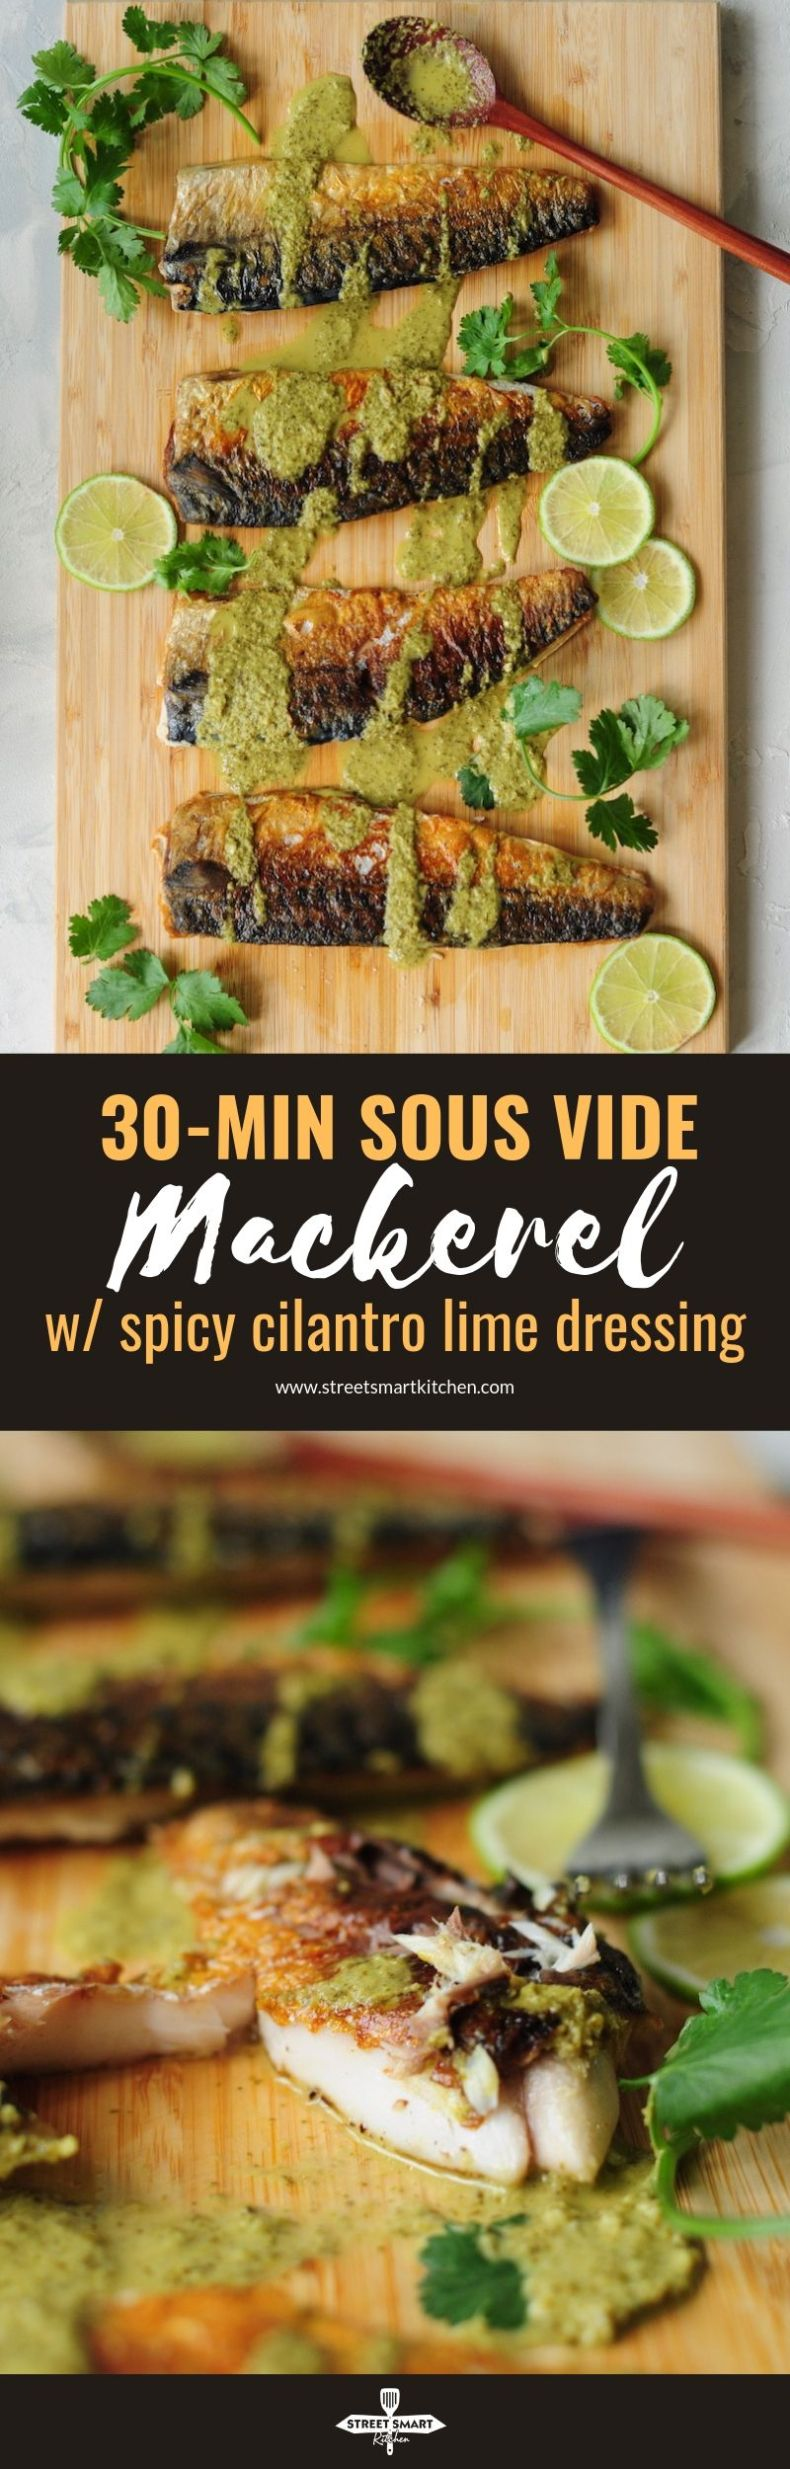 30-minute sous vide mackerel recipe drizzled with a homemade spicy cilantro lime dressing, it makes a quick and easy workday dinner.